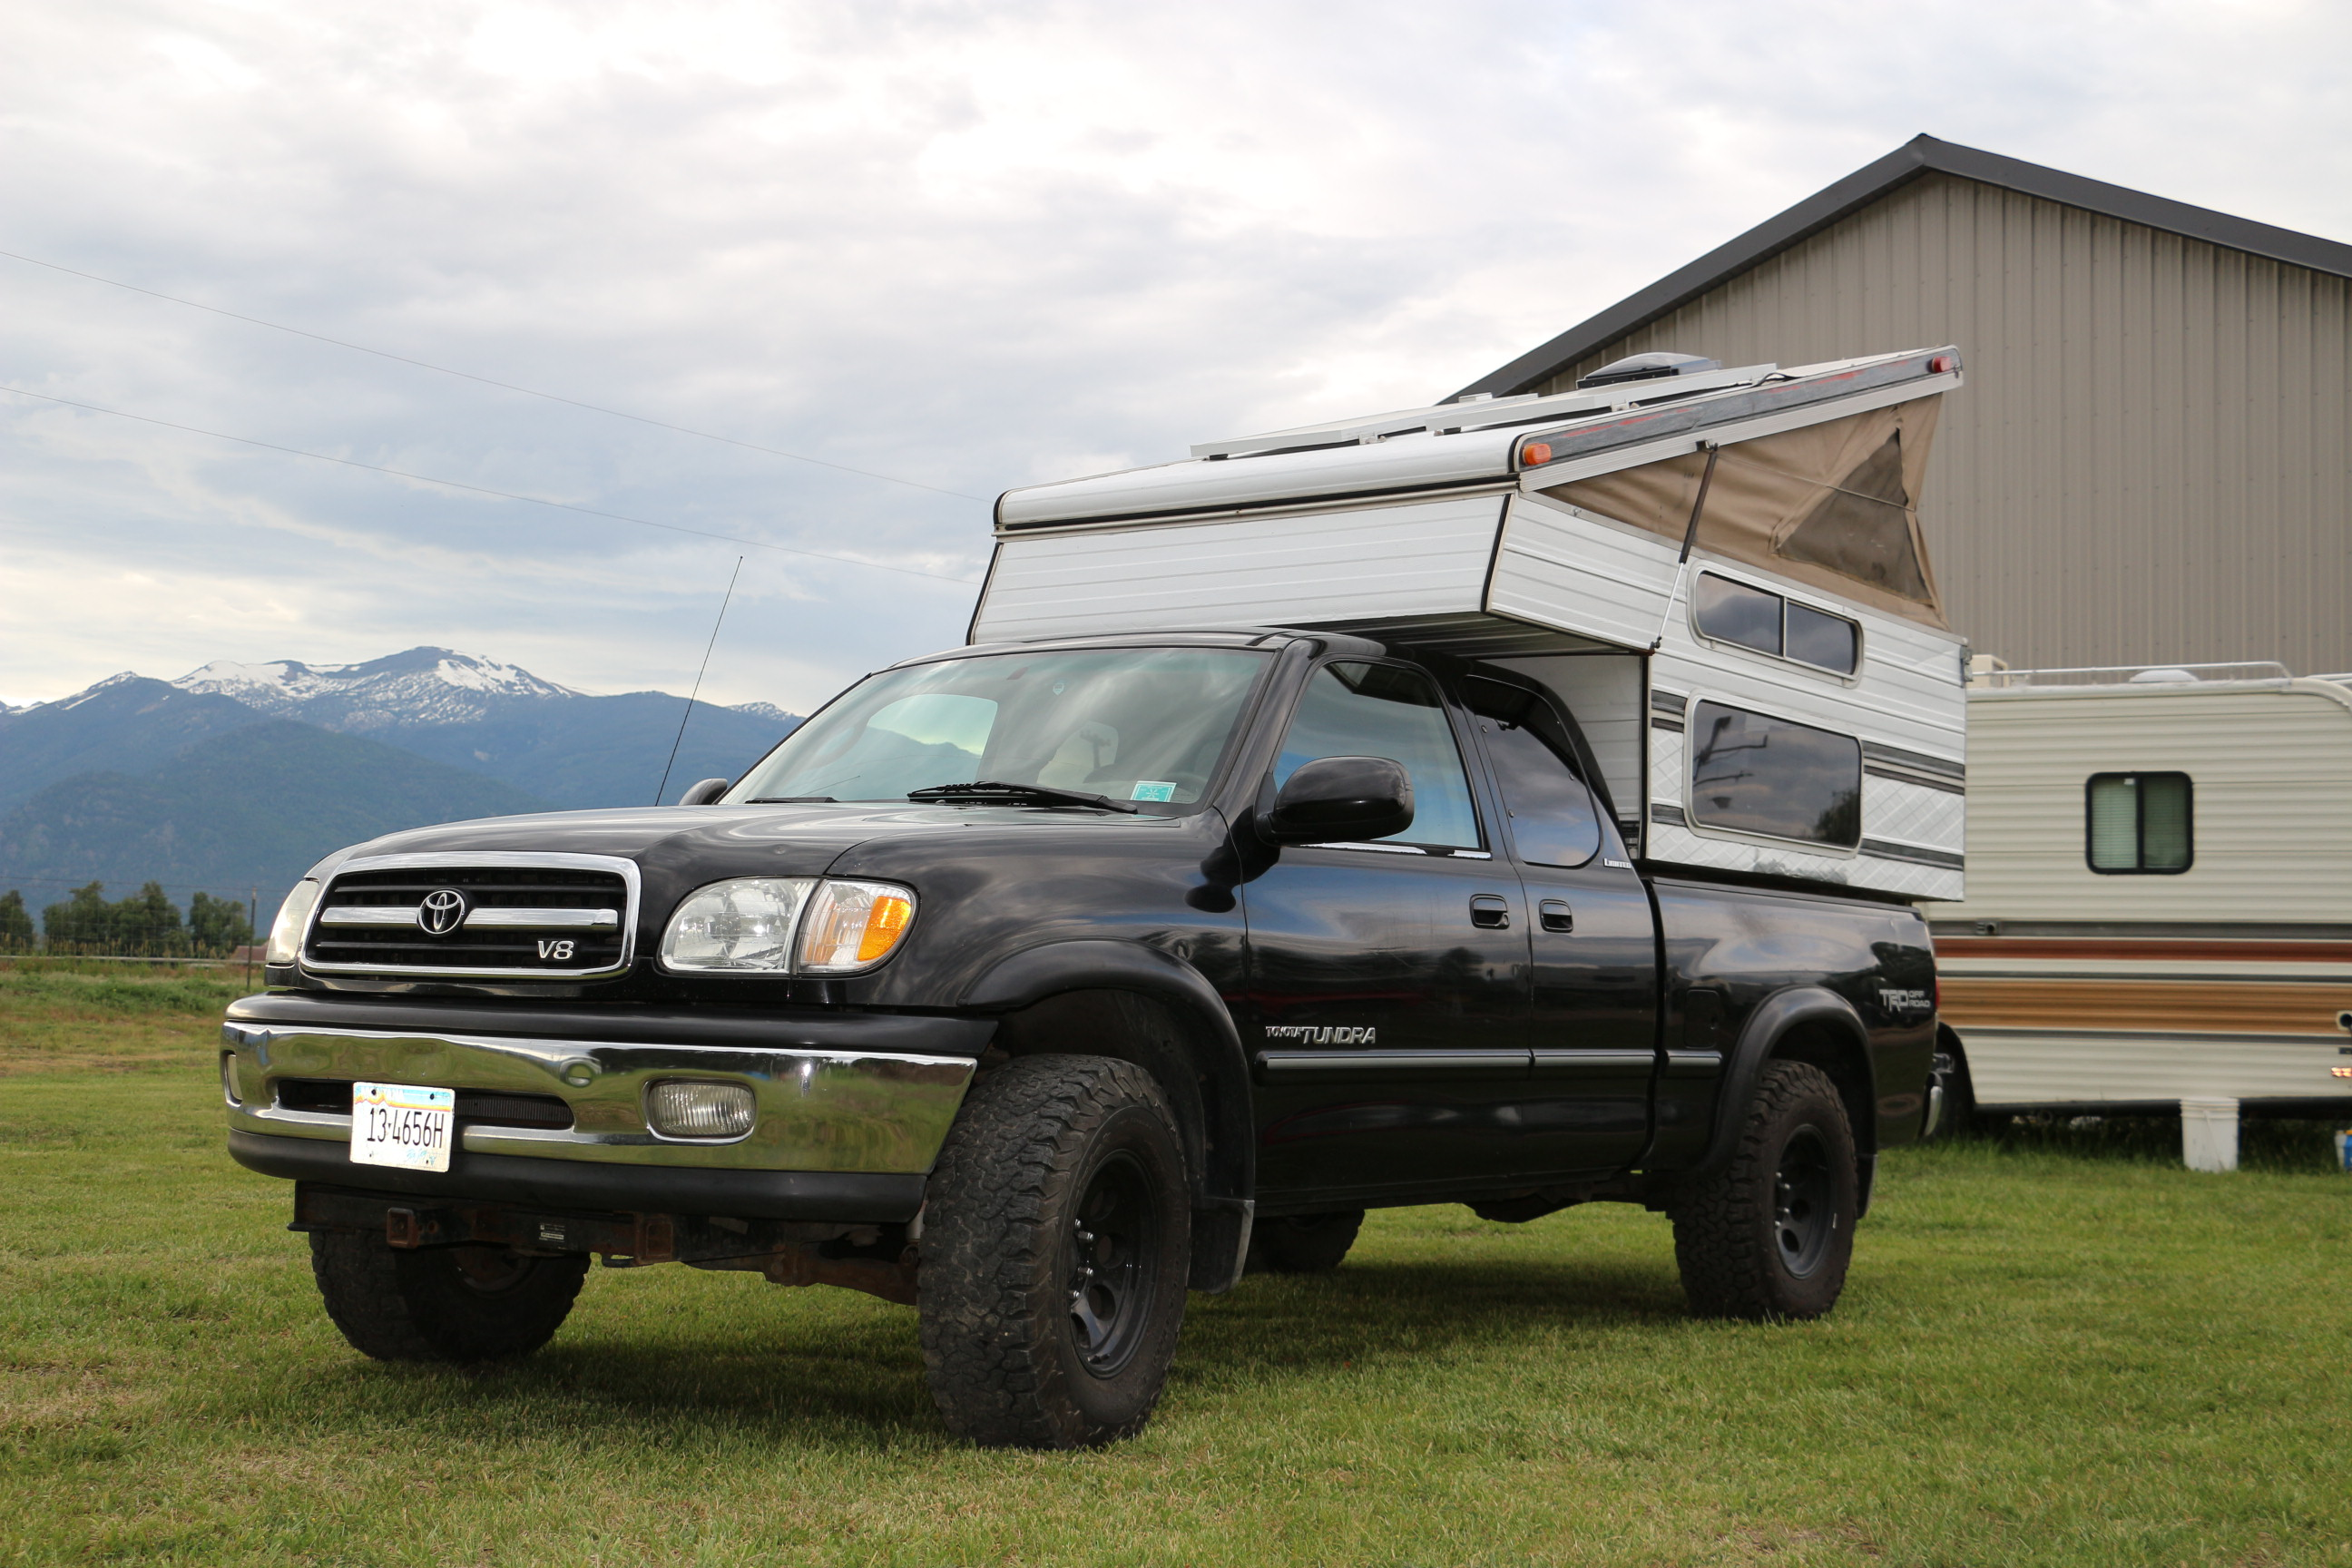 2001 Toyota Tundra 4x4 V8 With Roamin Chariot Camper Expedition Portal